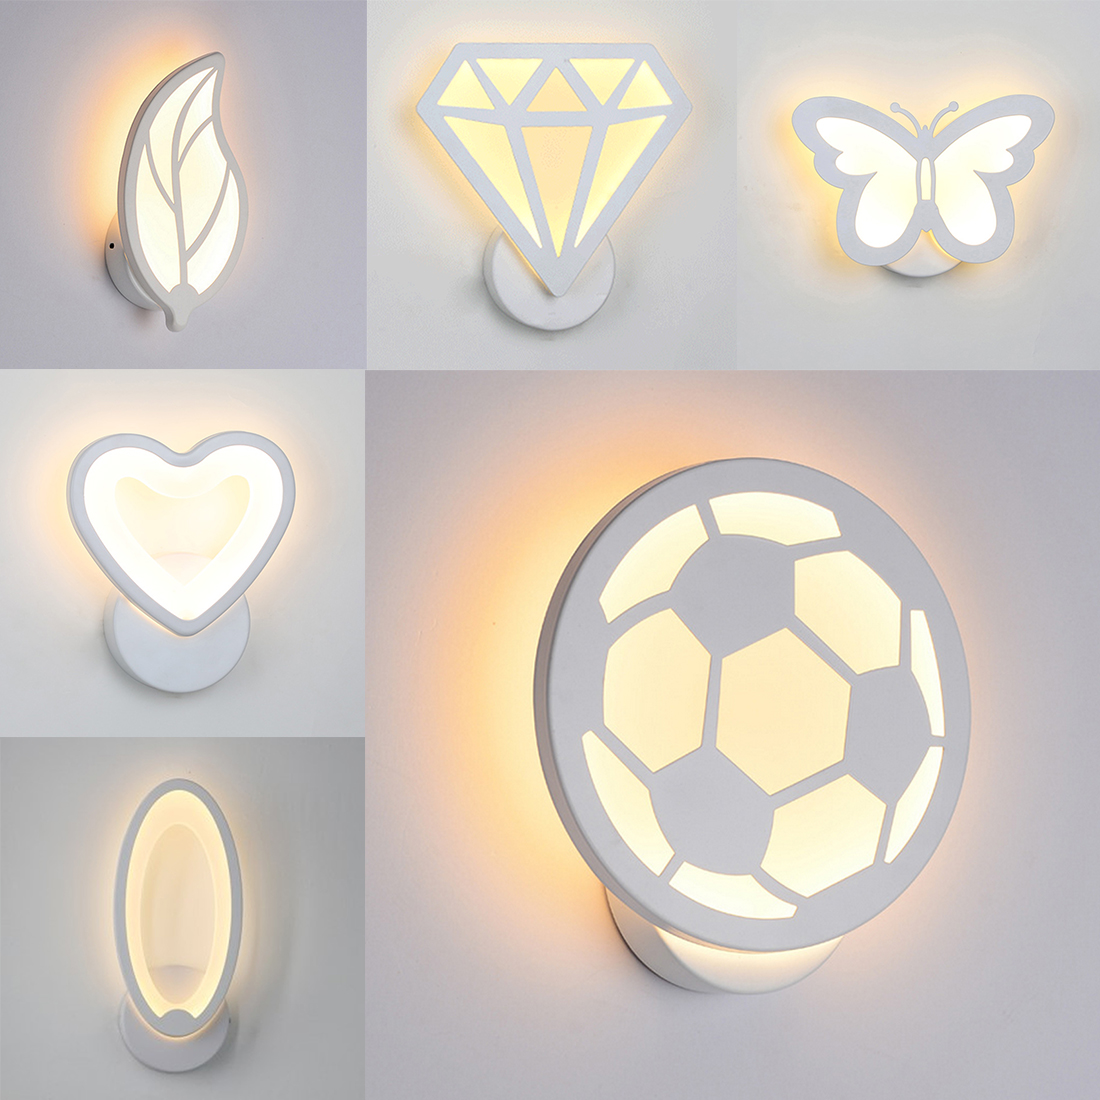 1pc 12W LED Acrylic wall light LED wall lamp bedside room bedroom wall lamps arts Postmodern minimalist creative Led wall lamp lovely plane wall lamp creative arts cartoon wall lamp the bedroom of children room lamps led night light on a bedside lamp